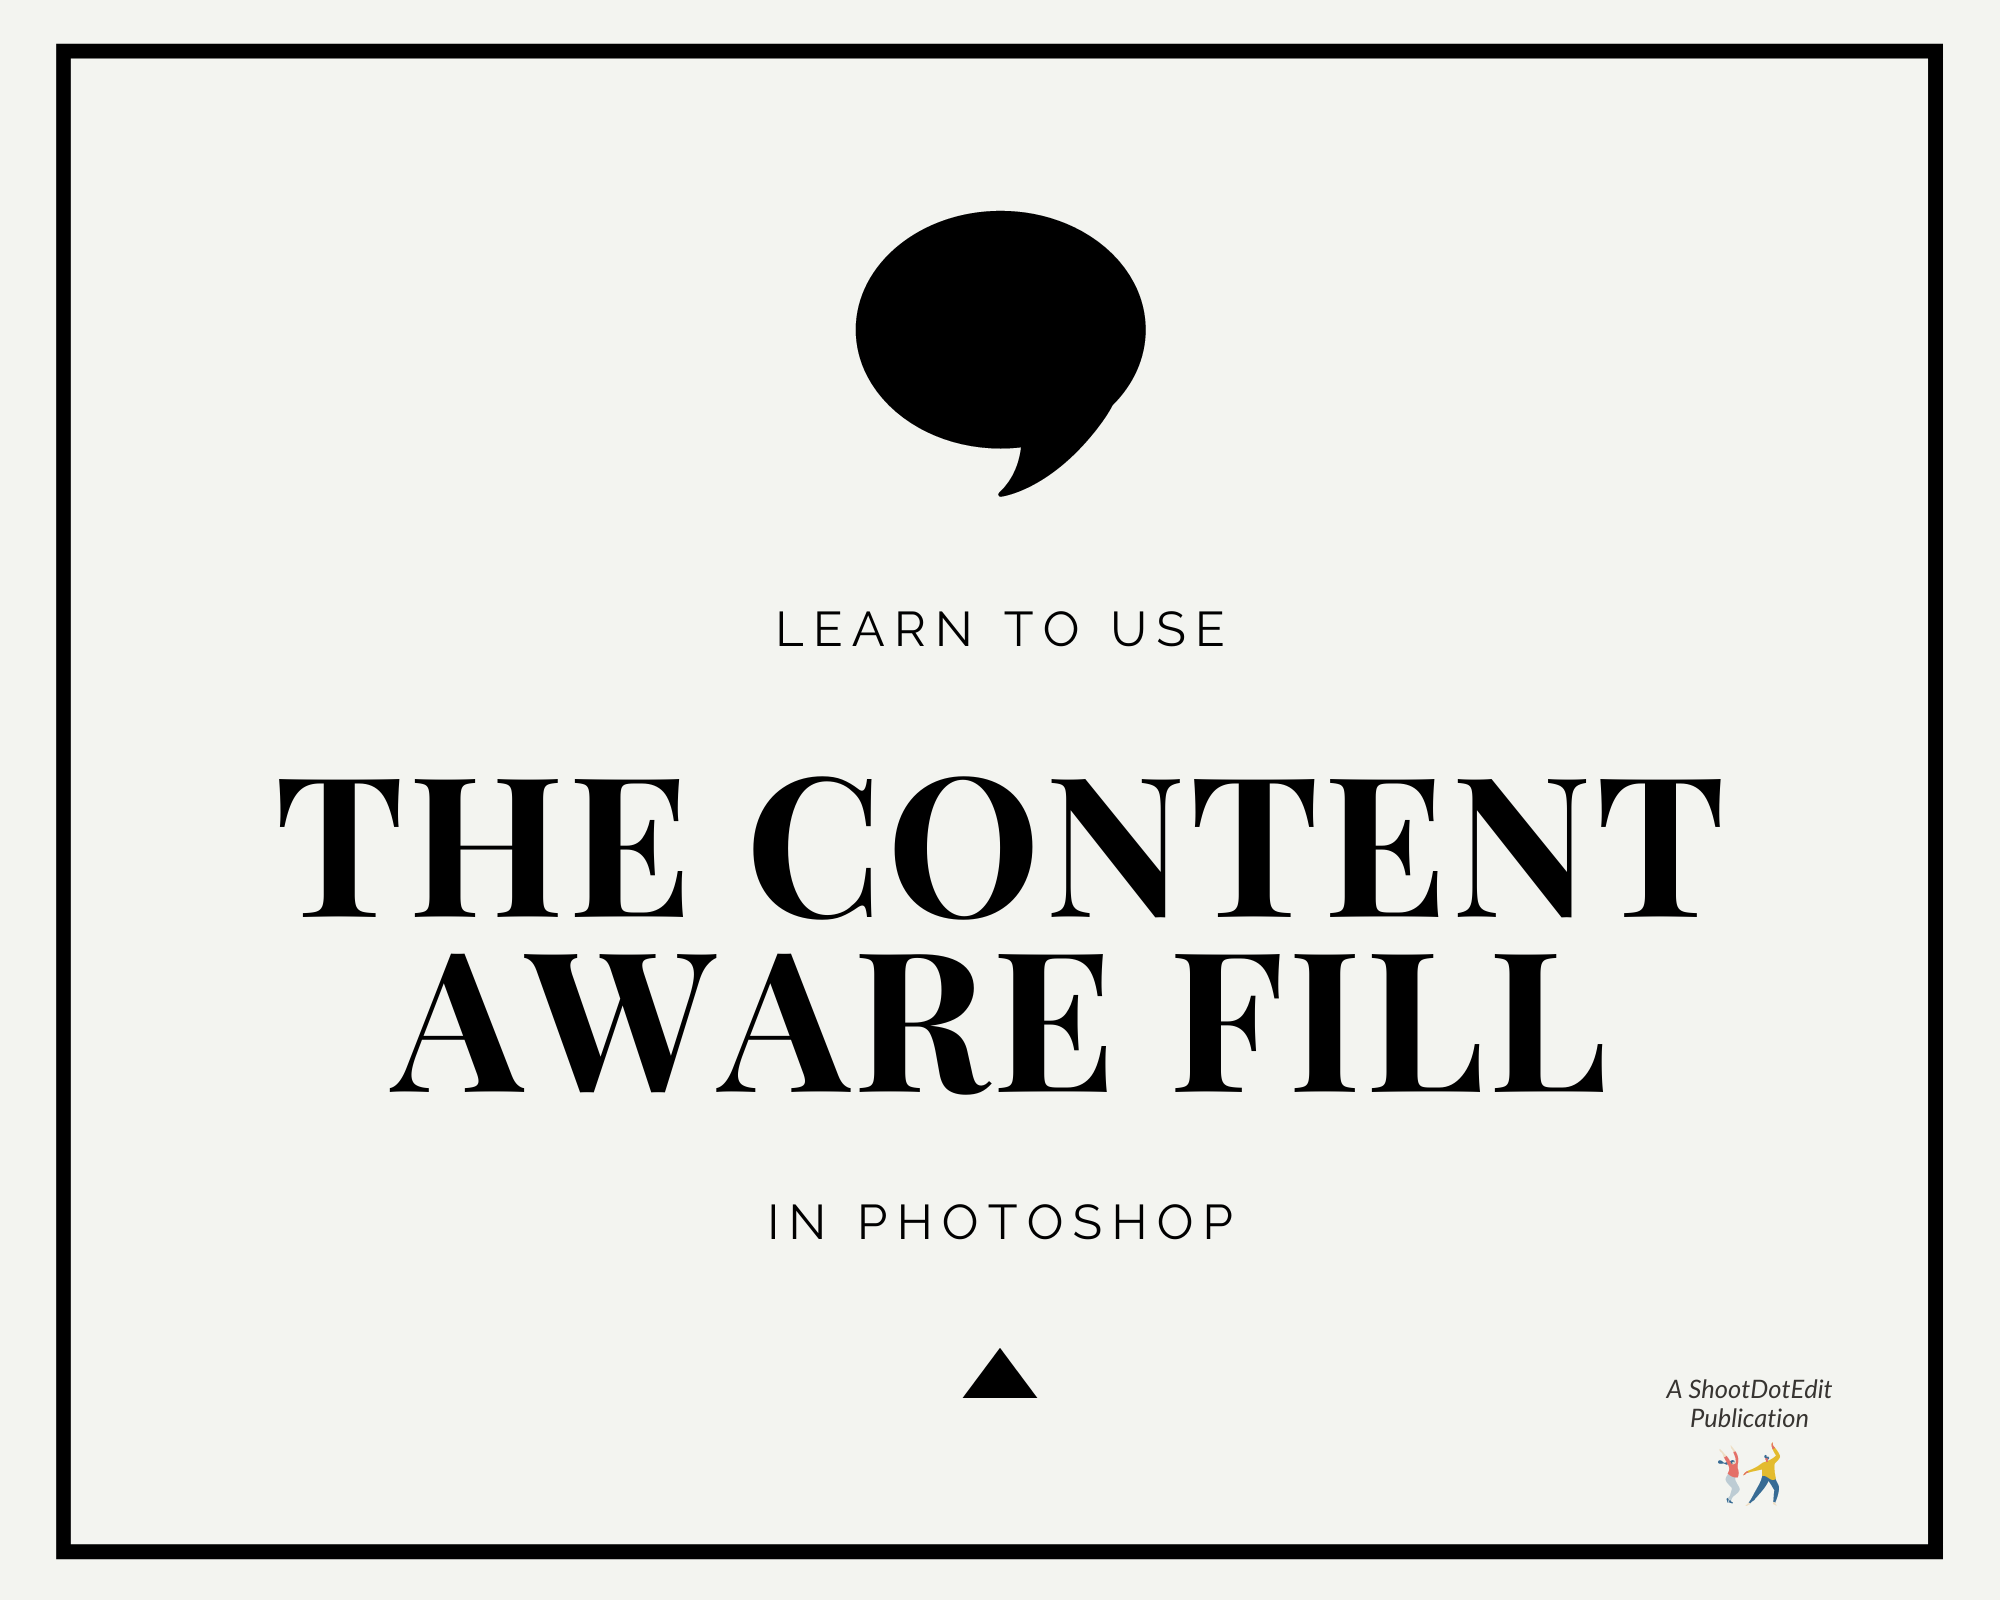 Infographic stating learn to use the content aware fill in photoshop